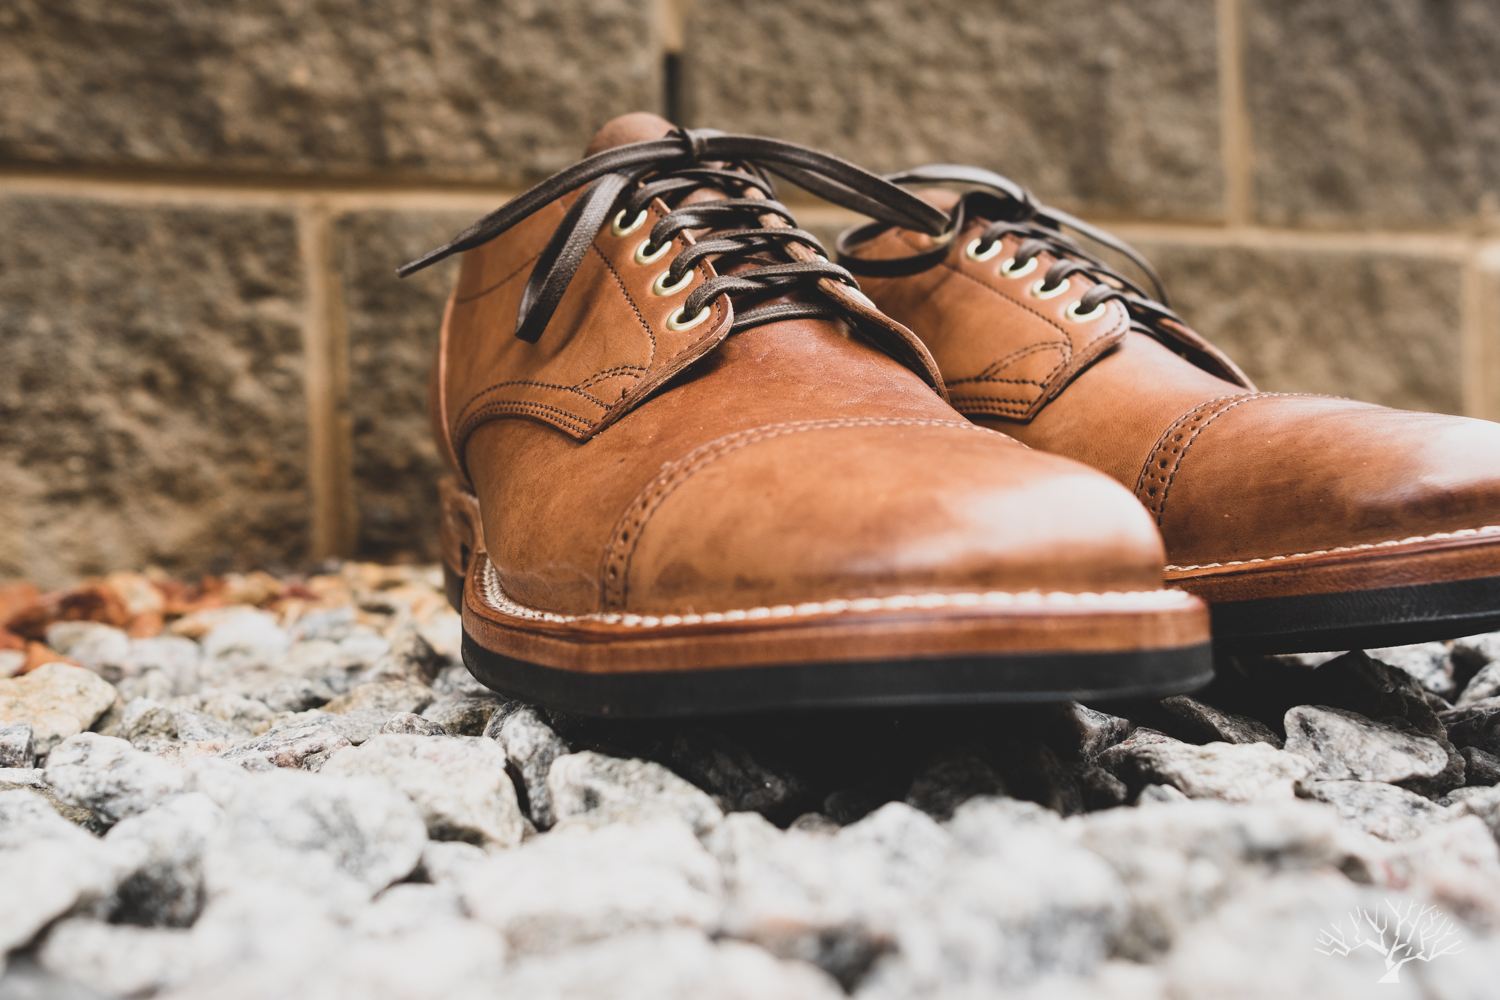 viberg for withered fig maryam crust horsebutt 145 oxford cap toe variation